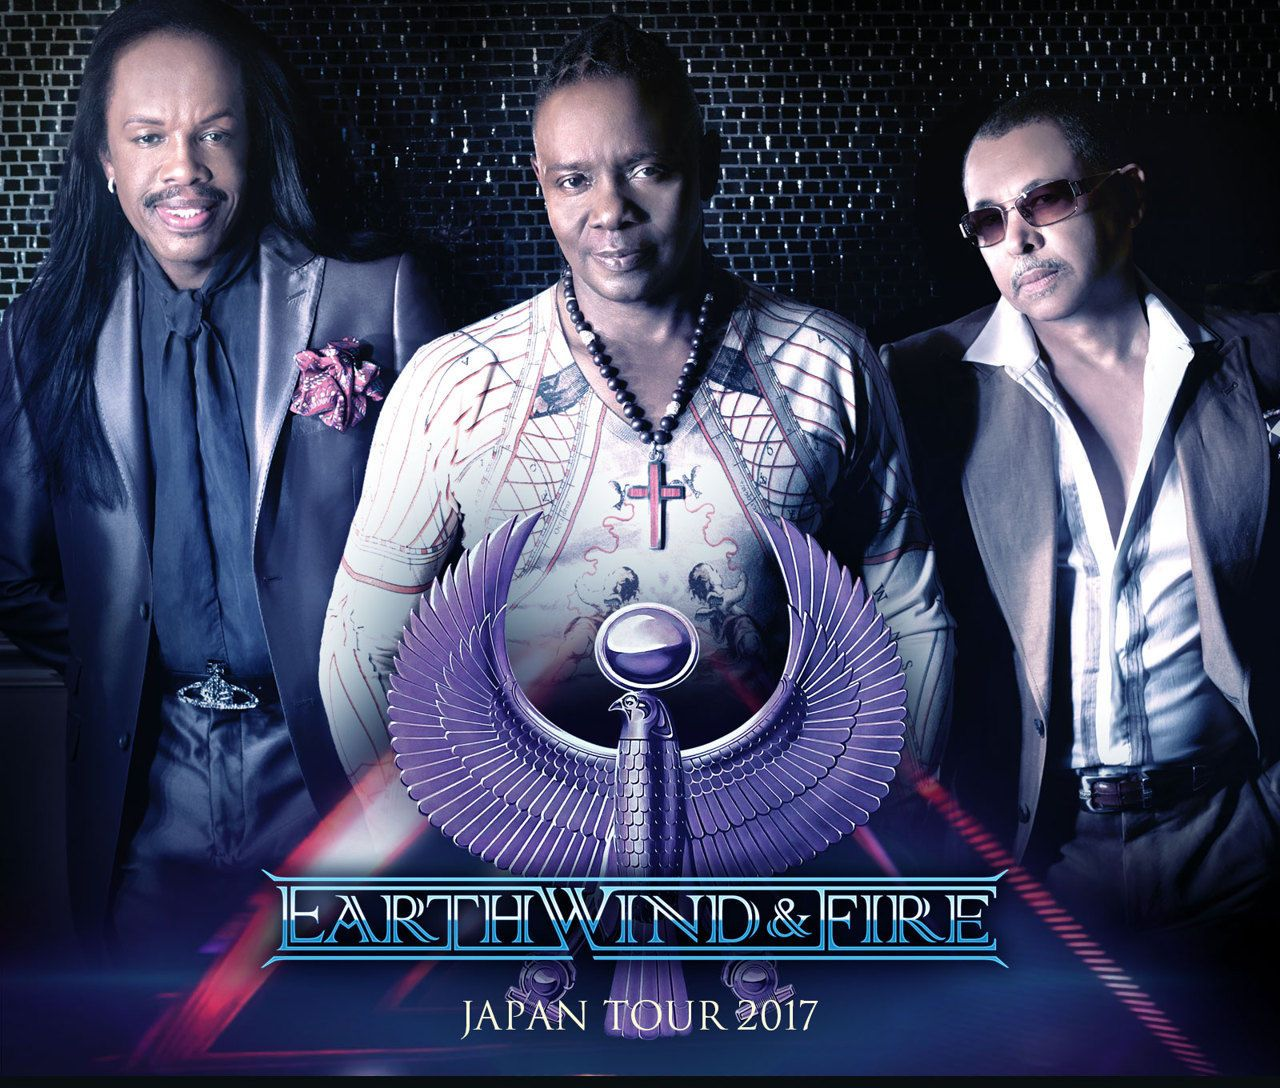 EARTH WIND & FIRE JAPAN TOUR 2017